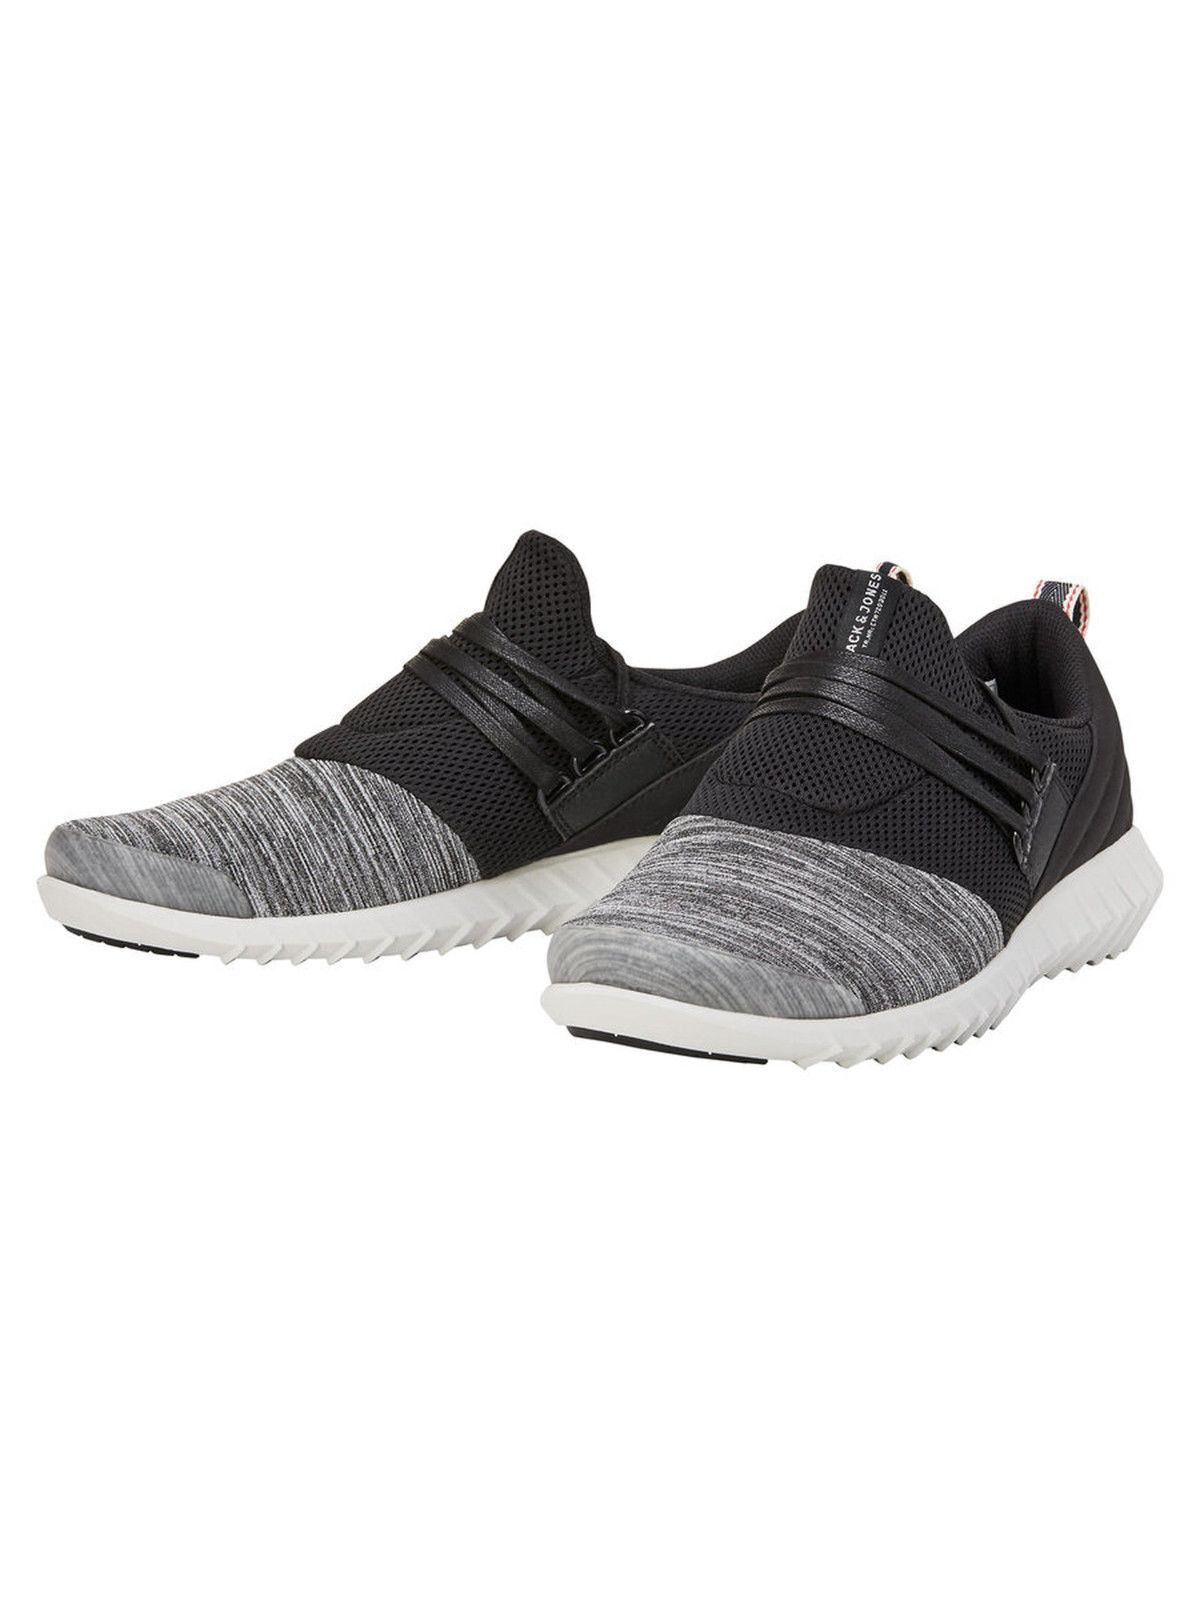 Jack & Jones Originals Trainers Knit  Uomo Fashion Trend Knit Trainers Sneakers Schuhes JFWDragon 9261bb